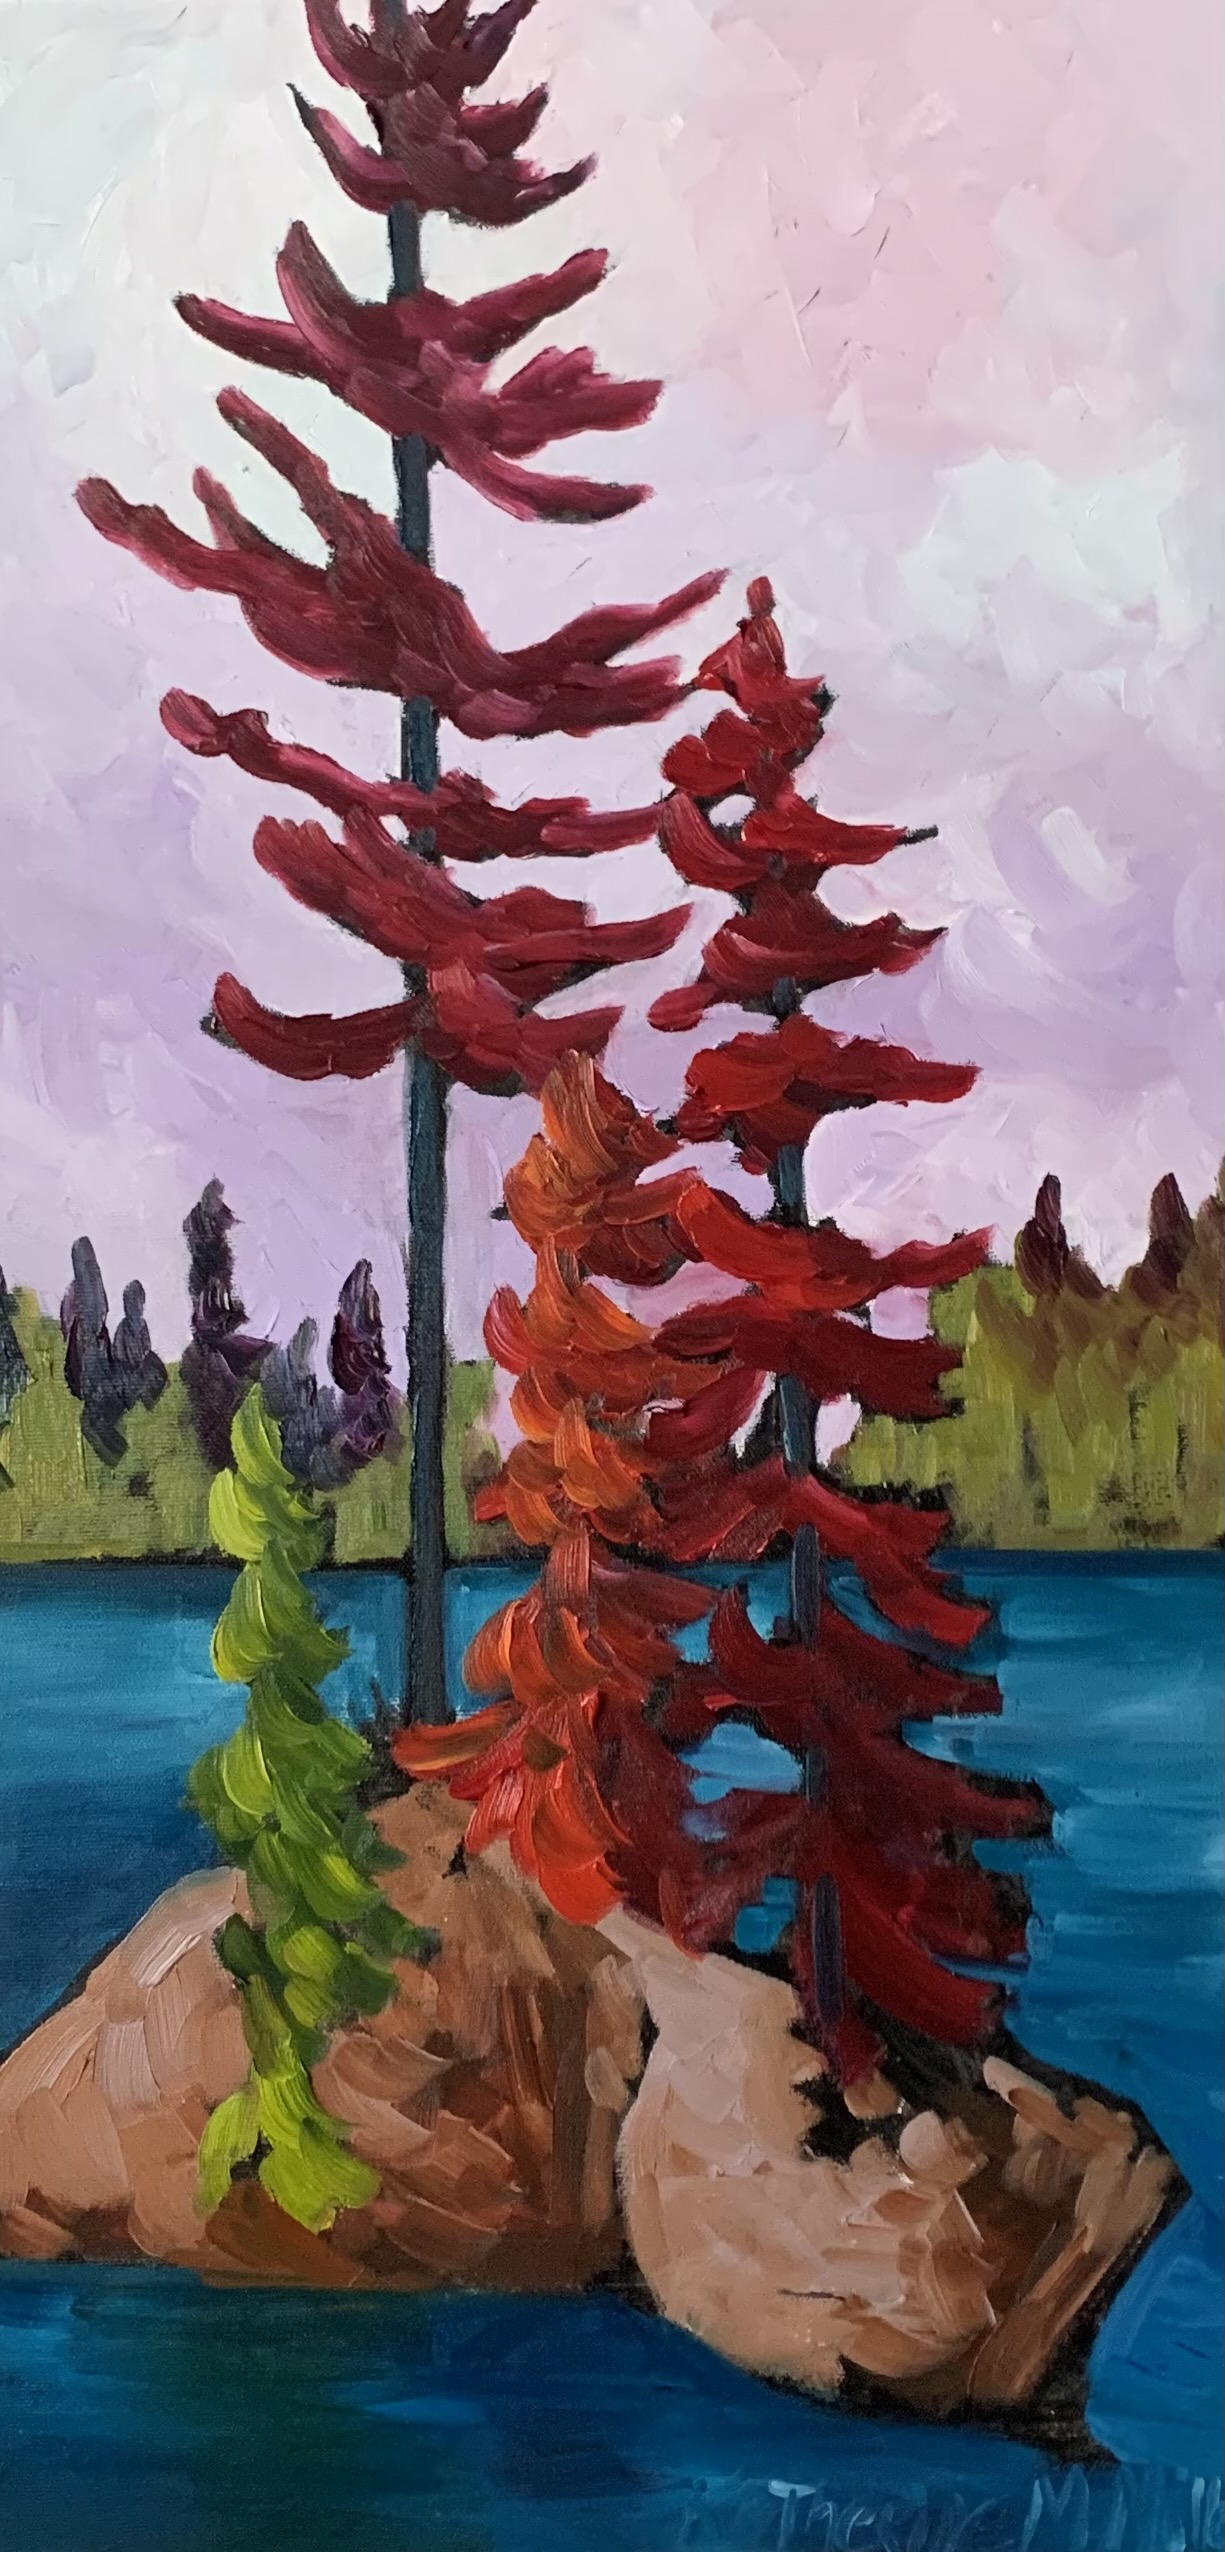 Islands of Temagami 2